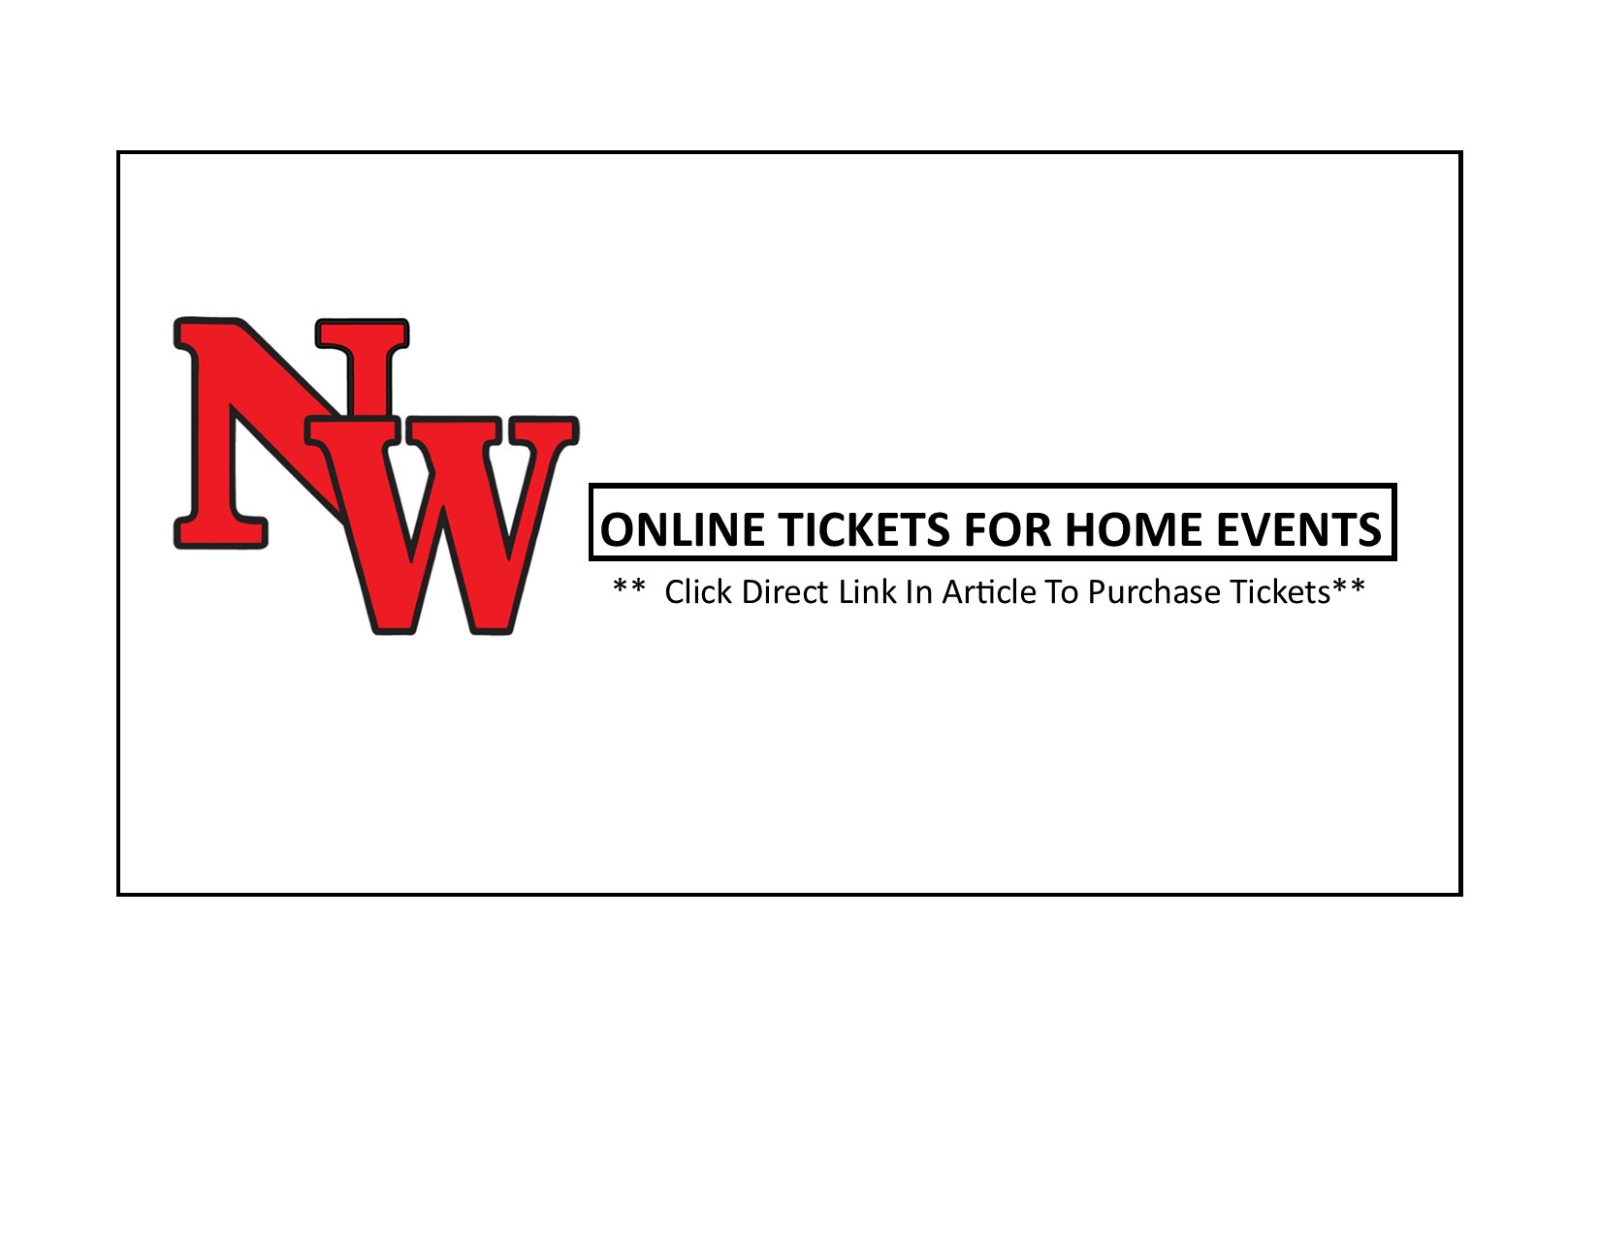 Direct Link to Online Tickets to NW HOME Events